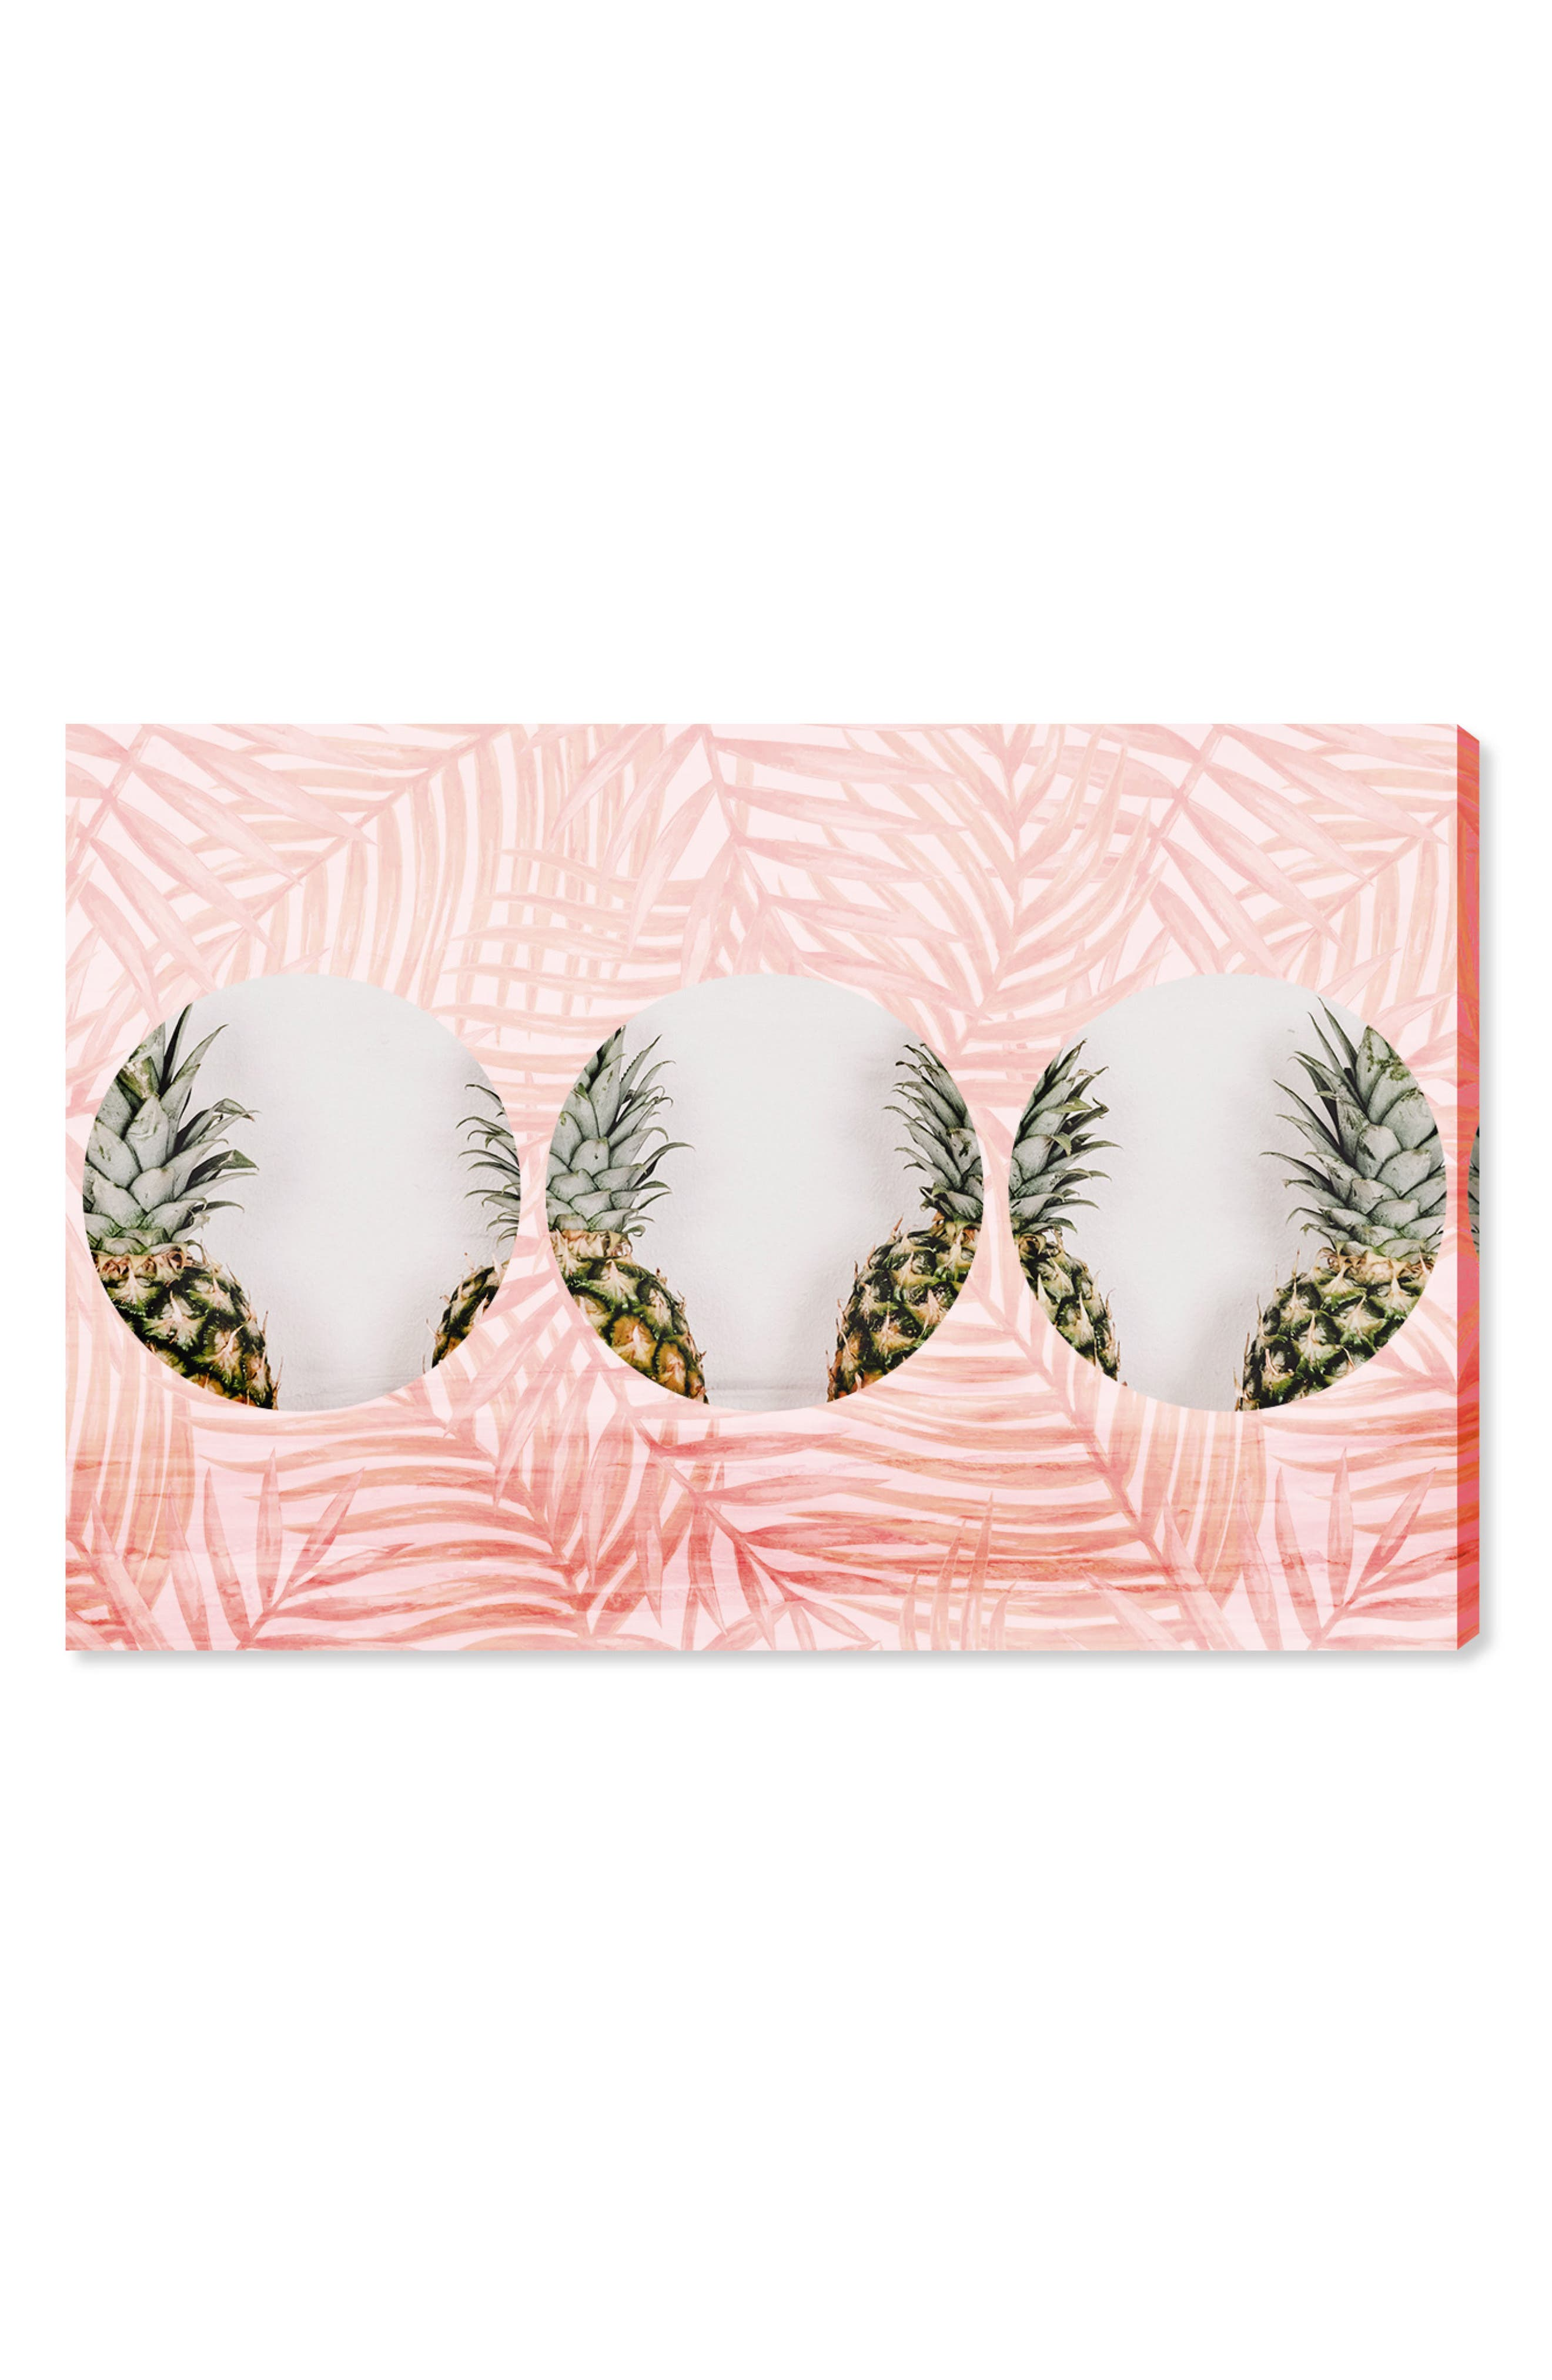 Alternate Image 1 Selected - Oliver Gal Pineapples & Leaves Canvas Wall Art